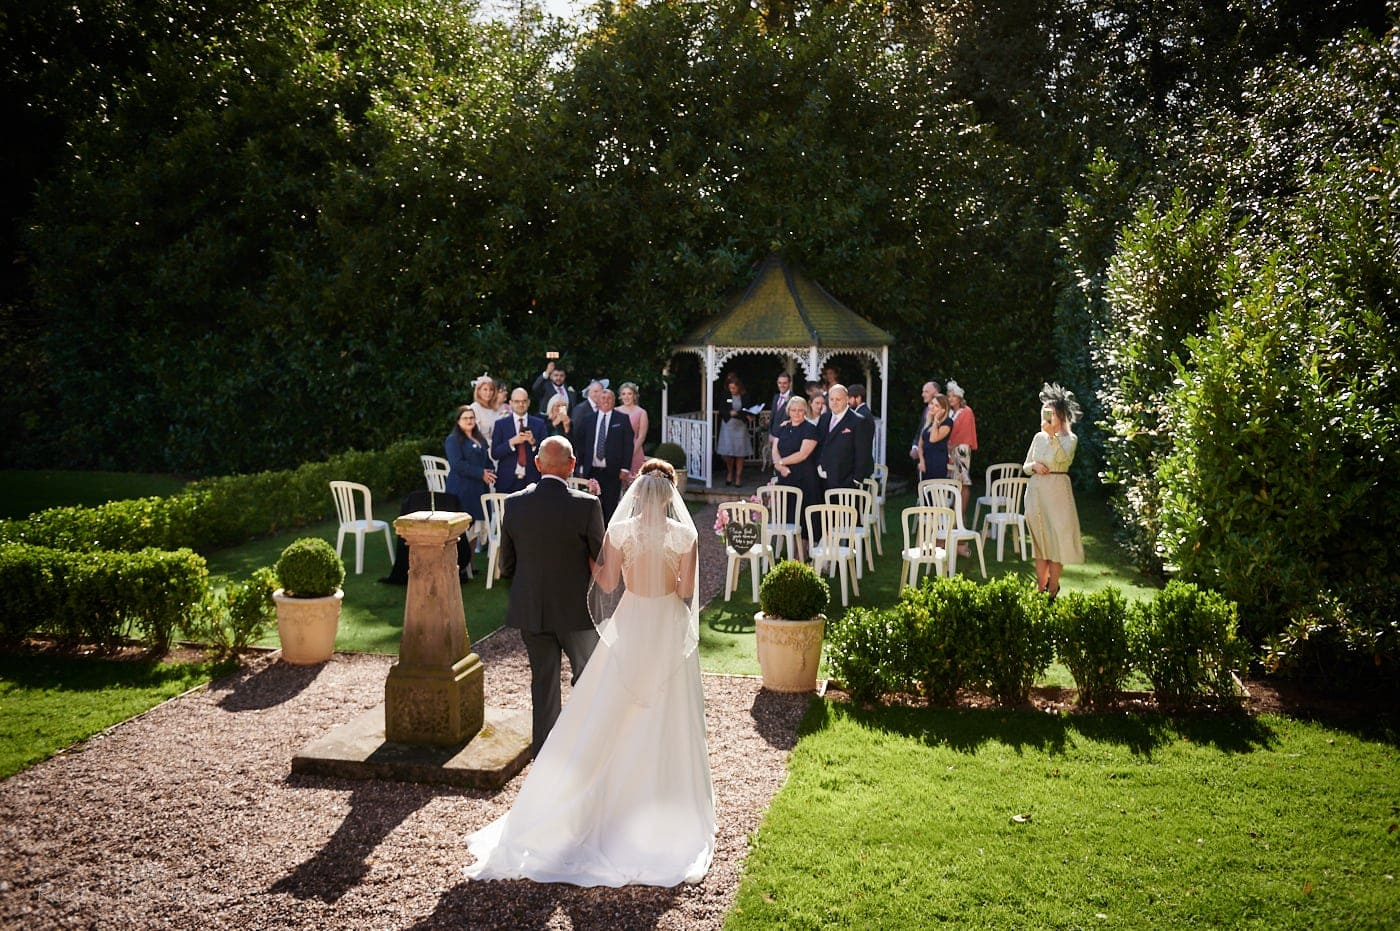 Outdoor wedding creremony in gardens at Pendrell Hall